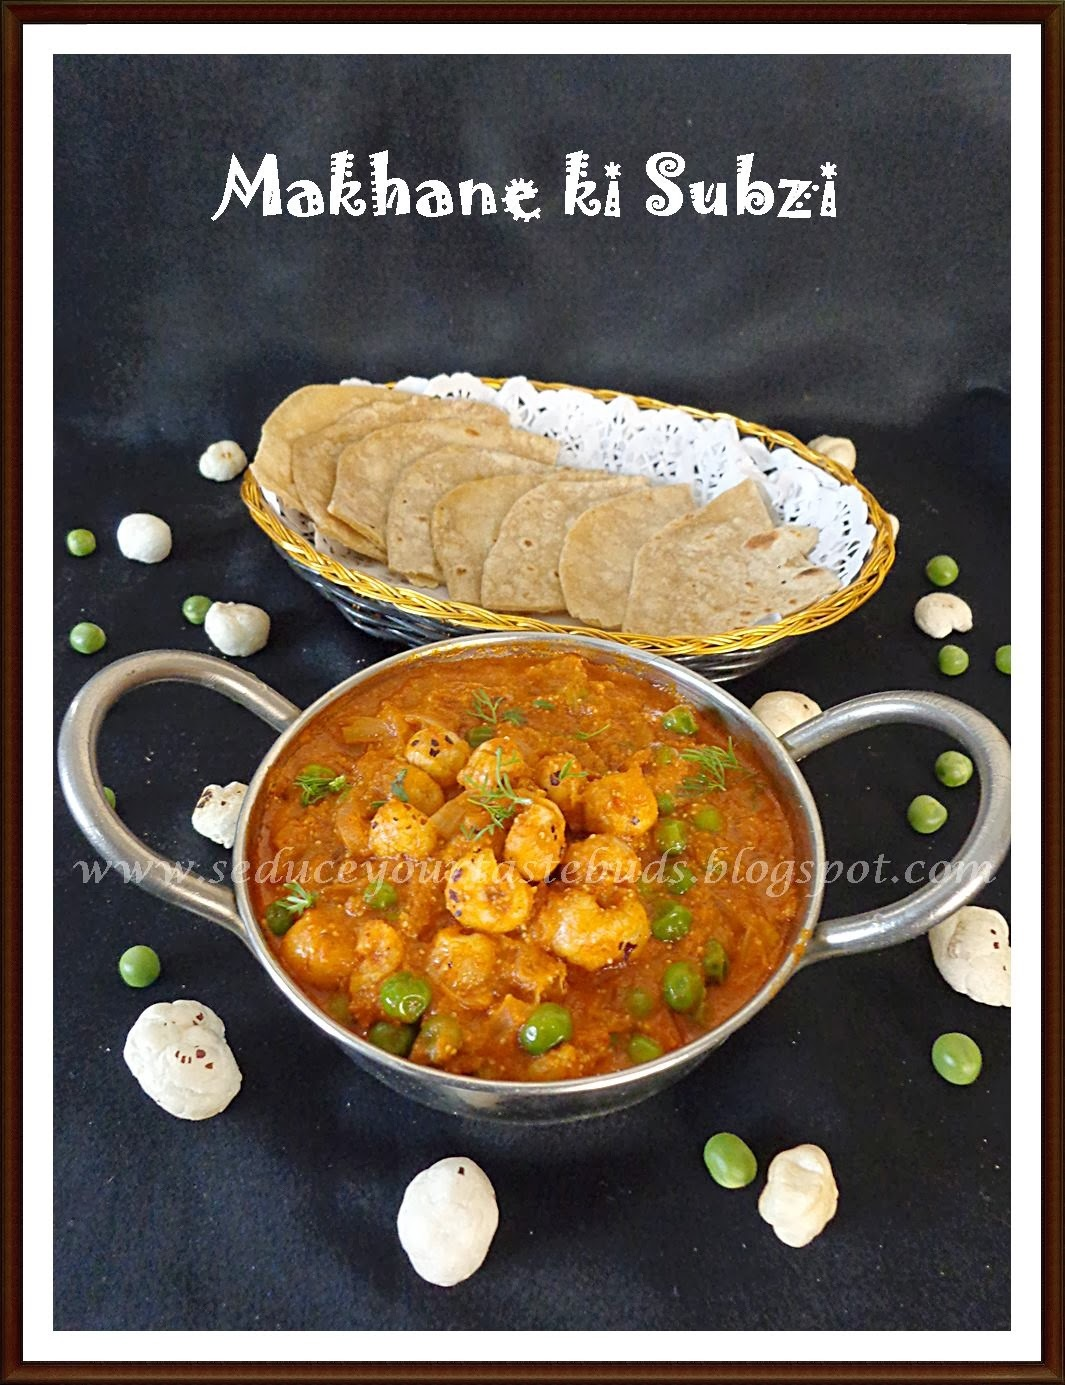 Makhane ki Sabji - Puffed Lotus Seeds Curry- Bihar